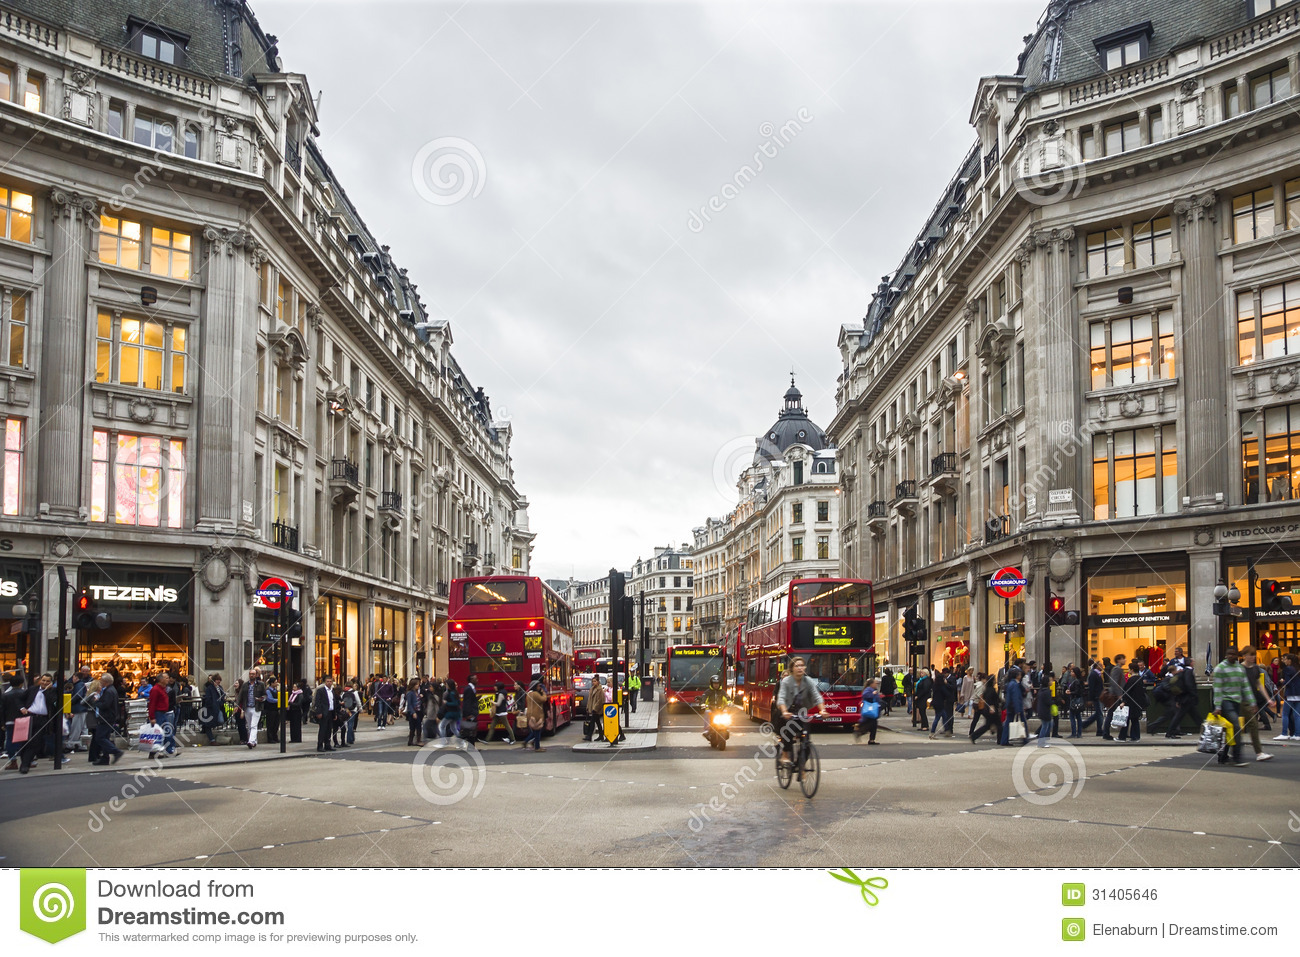 Shopping time in Oxford Street, London